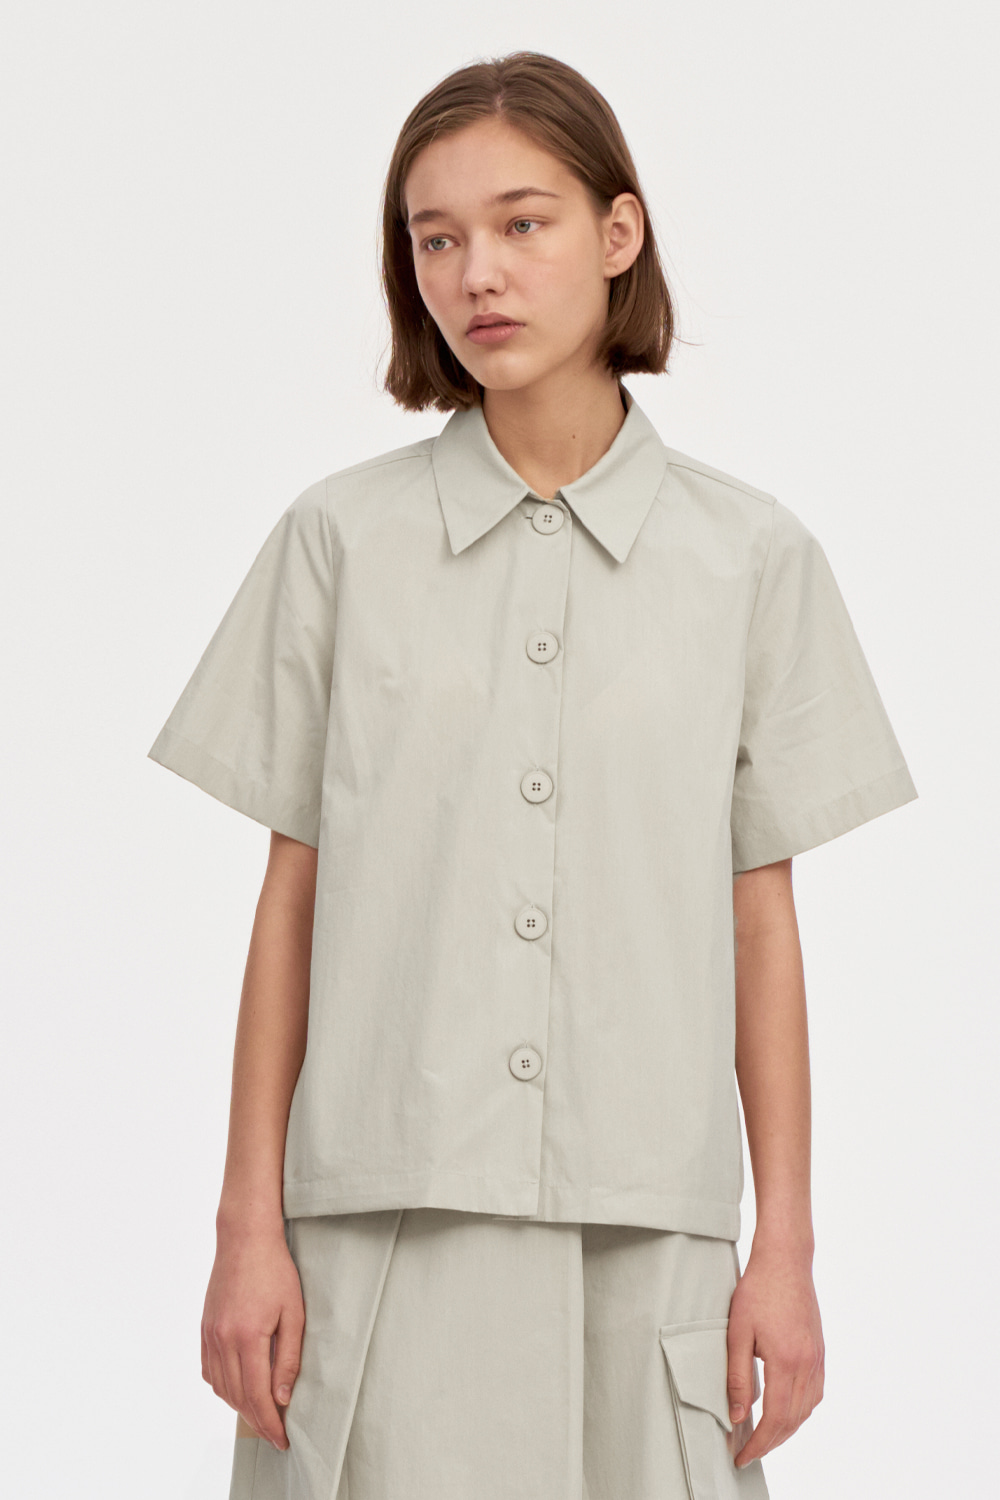 Over Shorts Shirts Women [Cream]